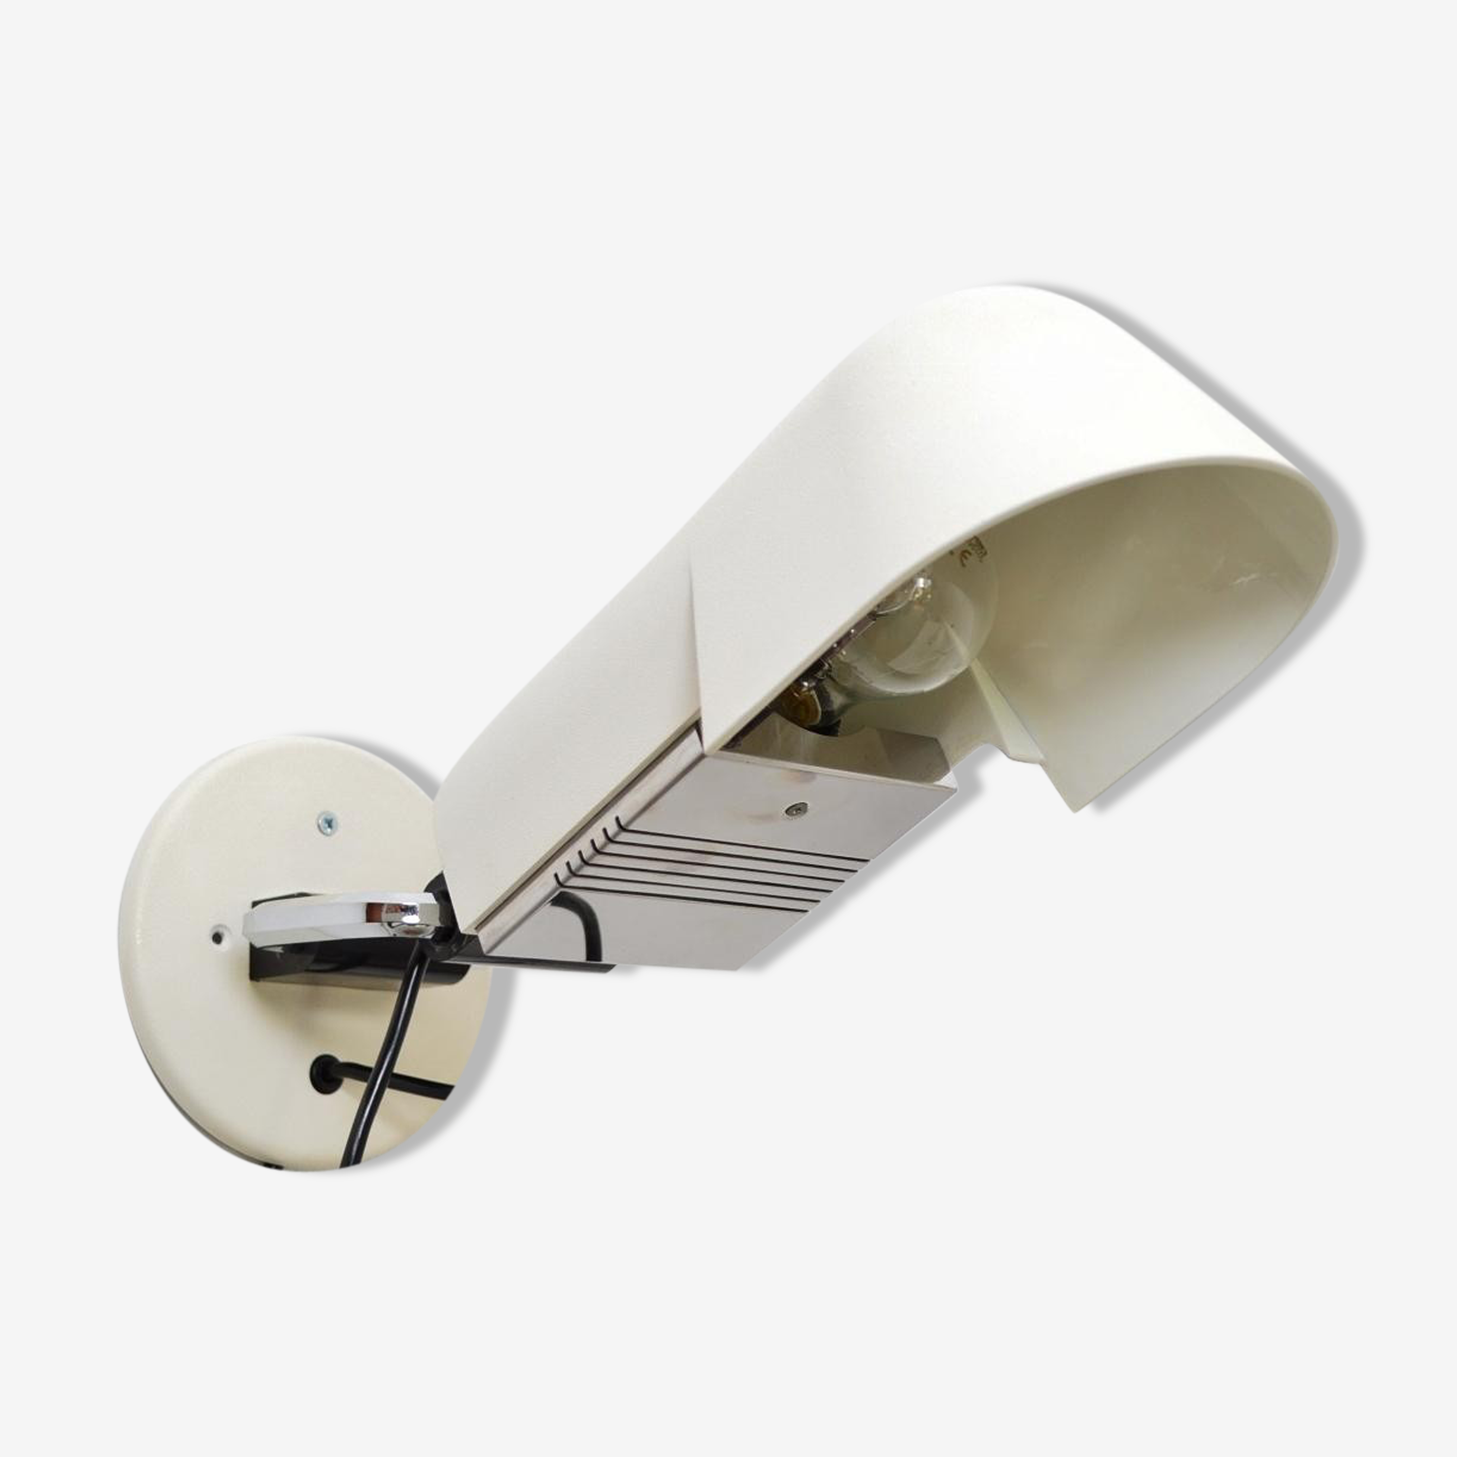 Wall lamp model ACAP space age by D. & C. Aroldi for Luci 1970 s